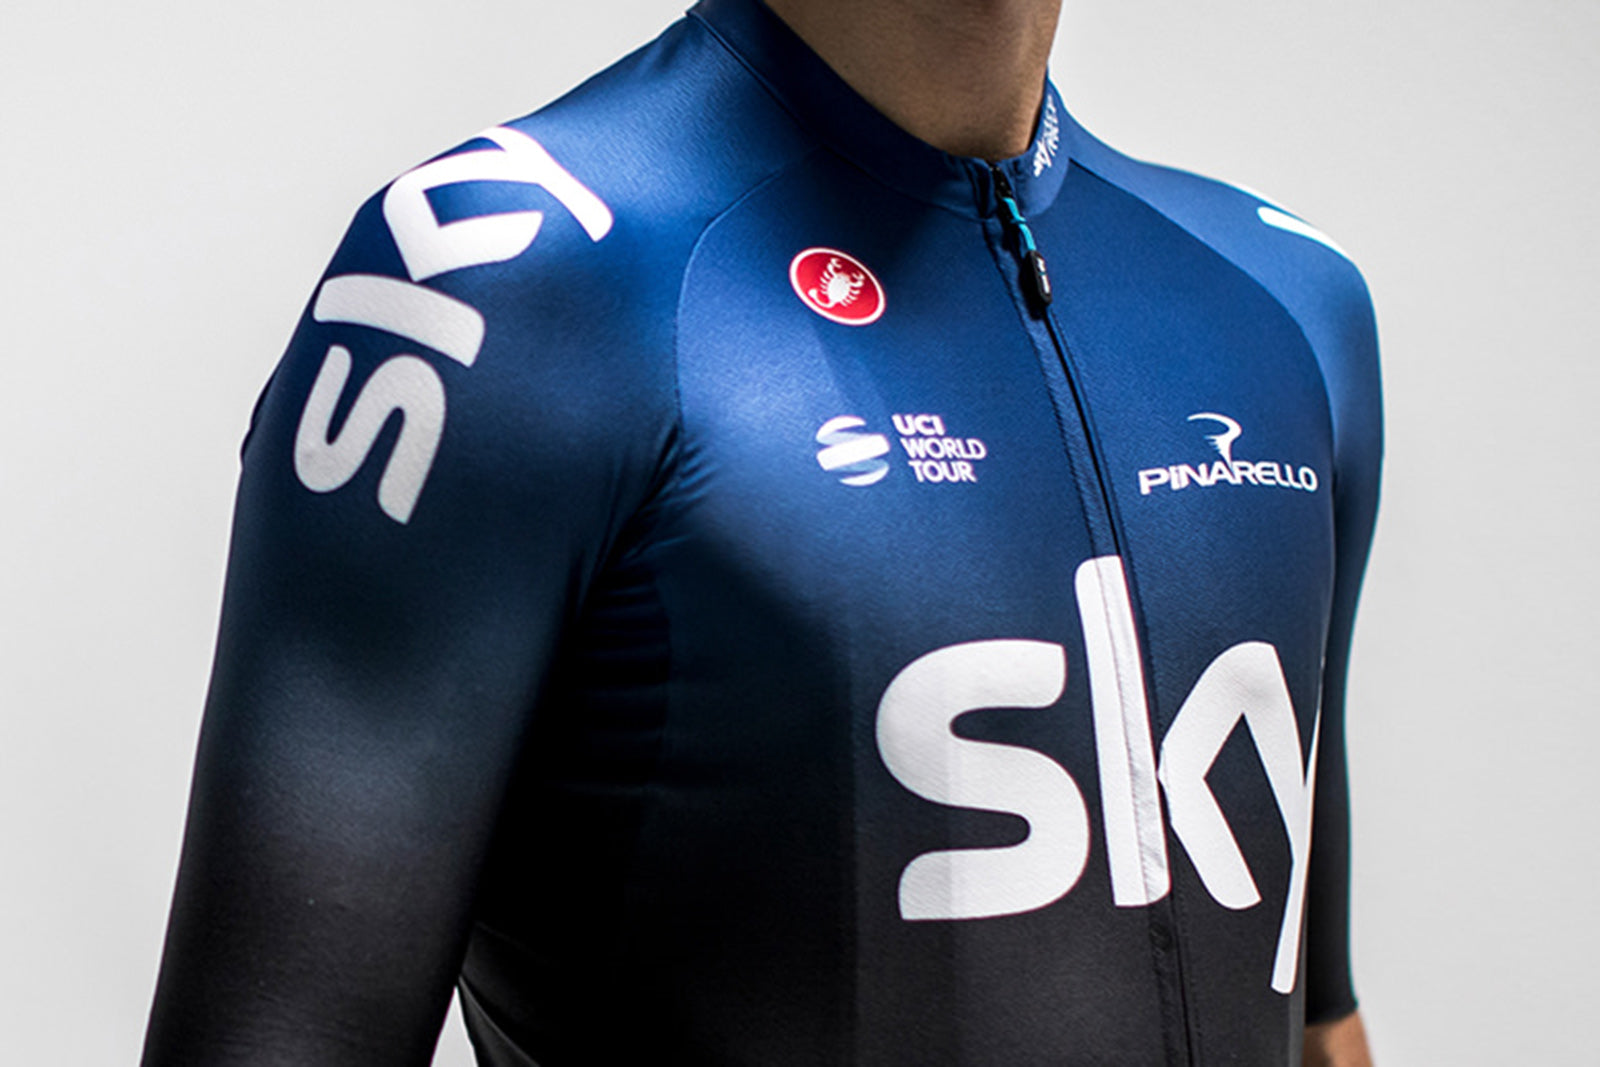 Castelli Reveals 2019 Team Sky Kit